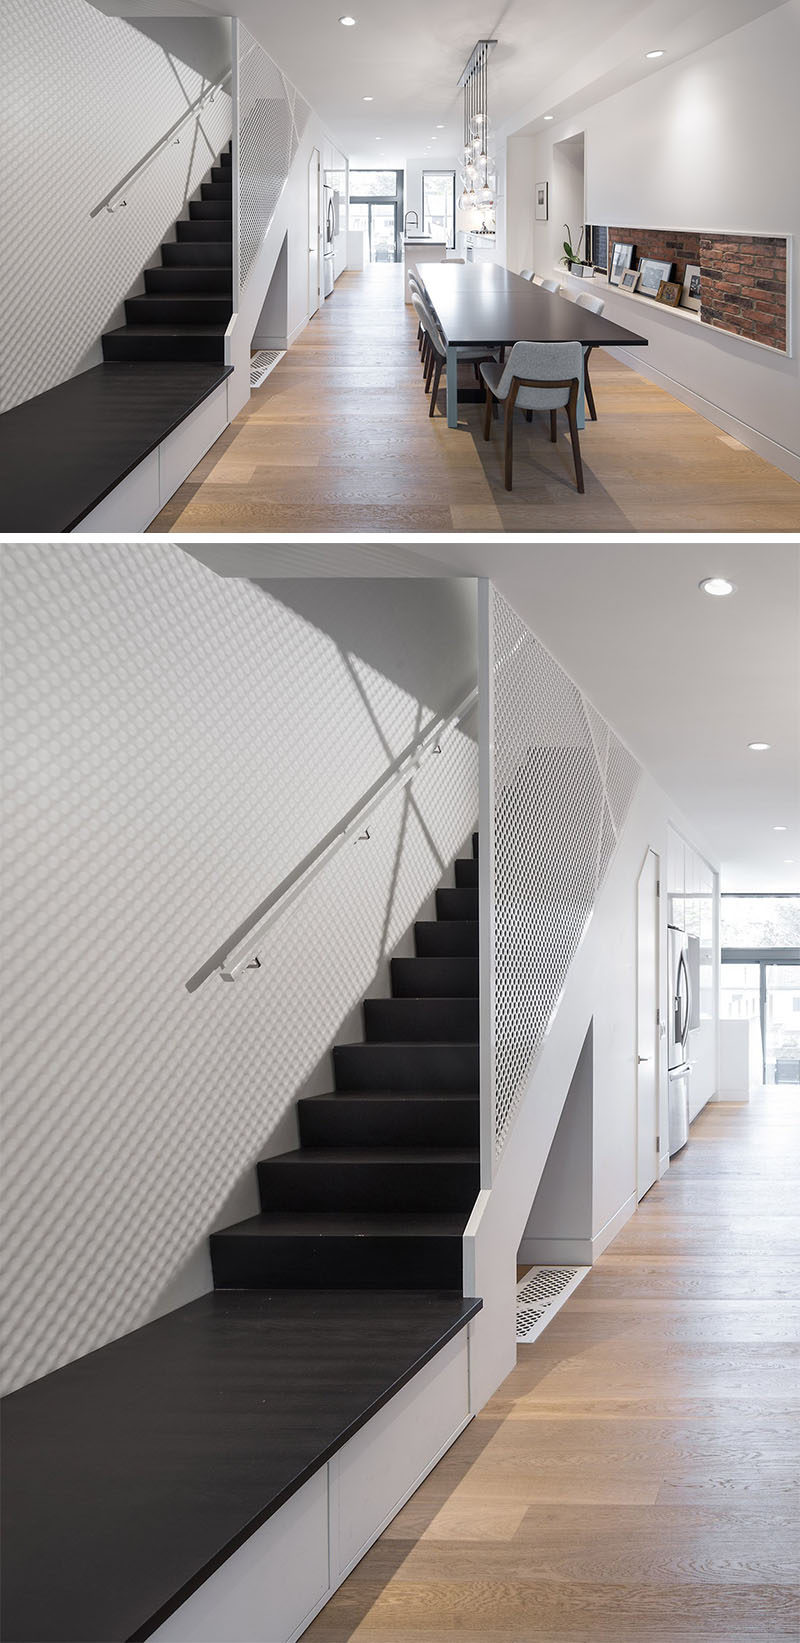 Design Idea For Stairs – This Stair Landing Has Hidden Shoe Storage